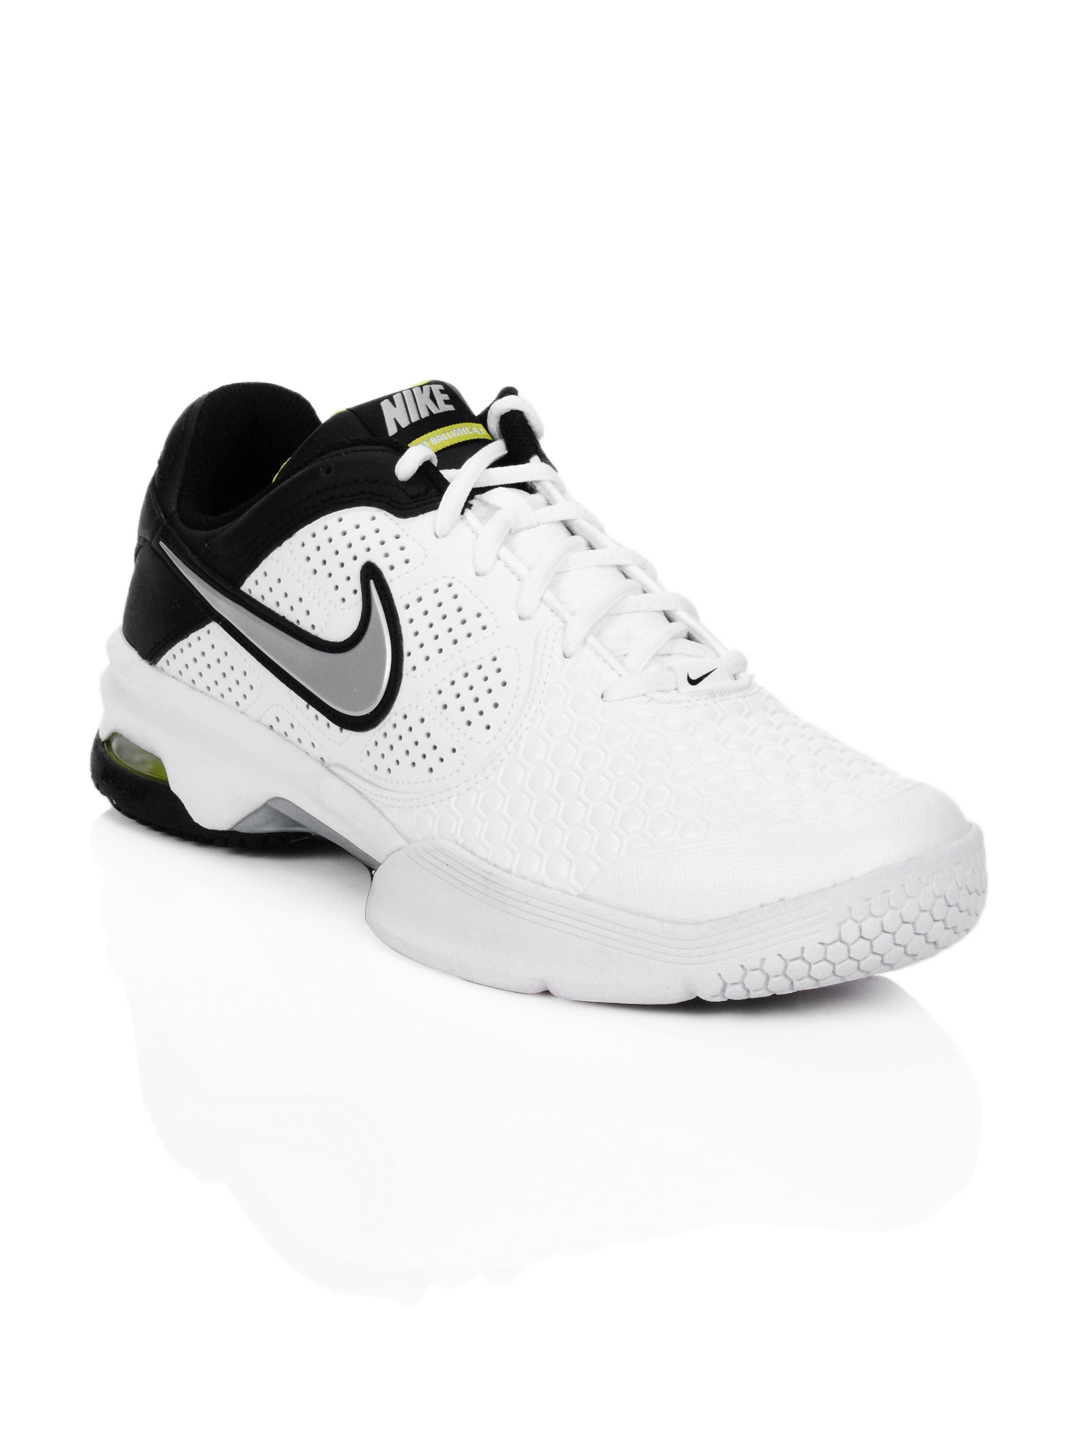 Nike Men Air Courtballistec 4.1 White Sports Shoes